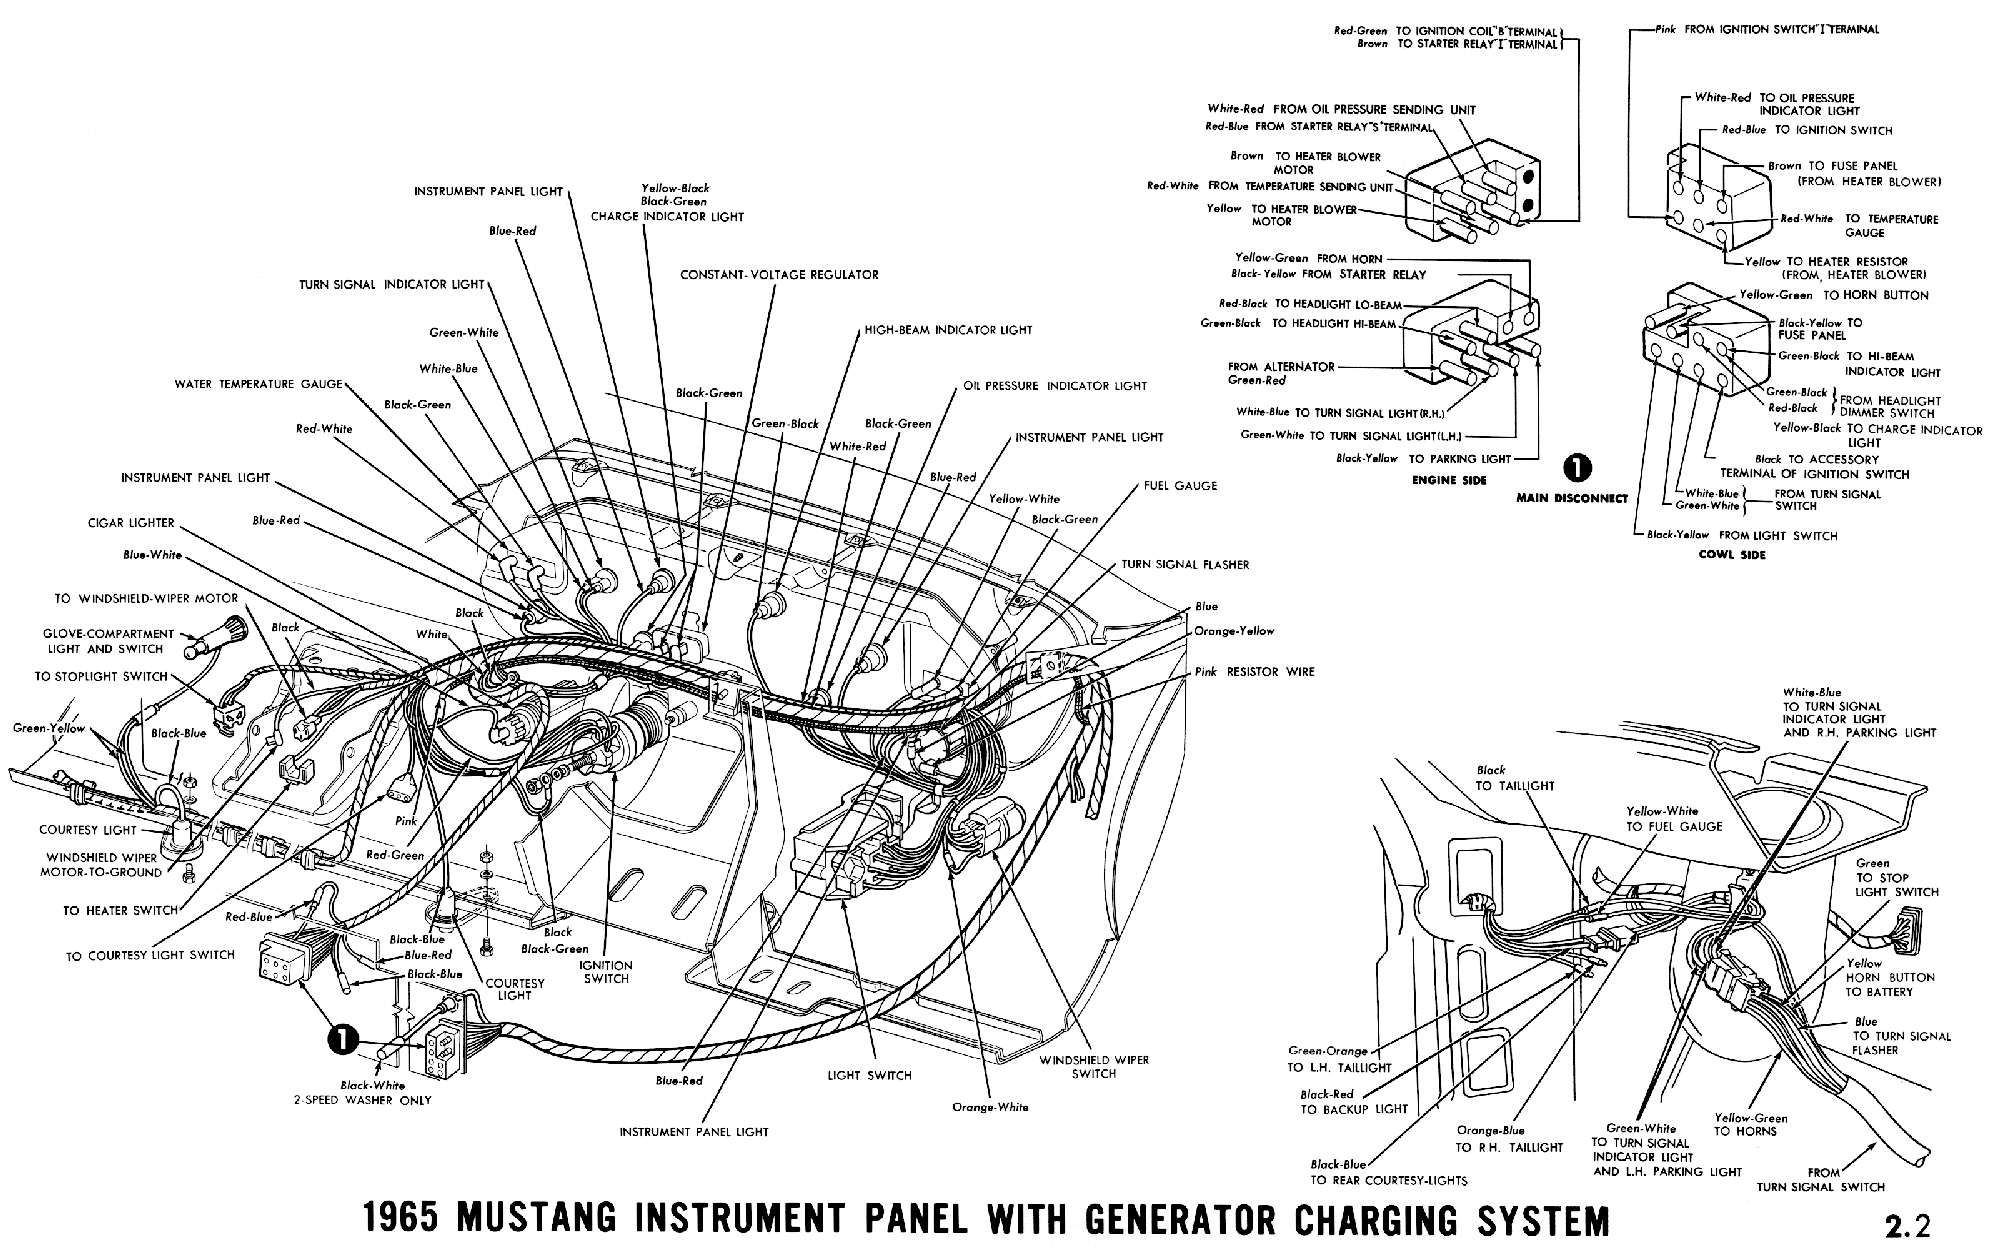 1965 Mustang Wiring Diagrams - Average Joe Restoration | 1965 mustang,  Mustang, DiagramPinterest